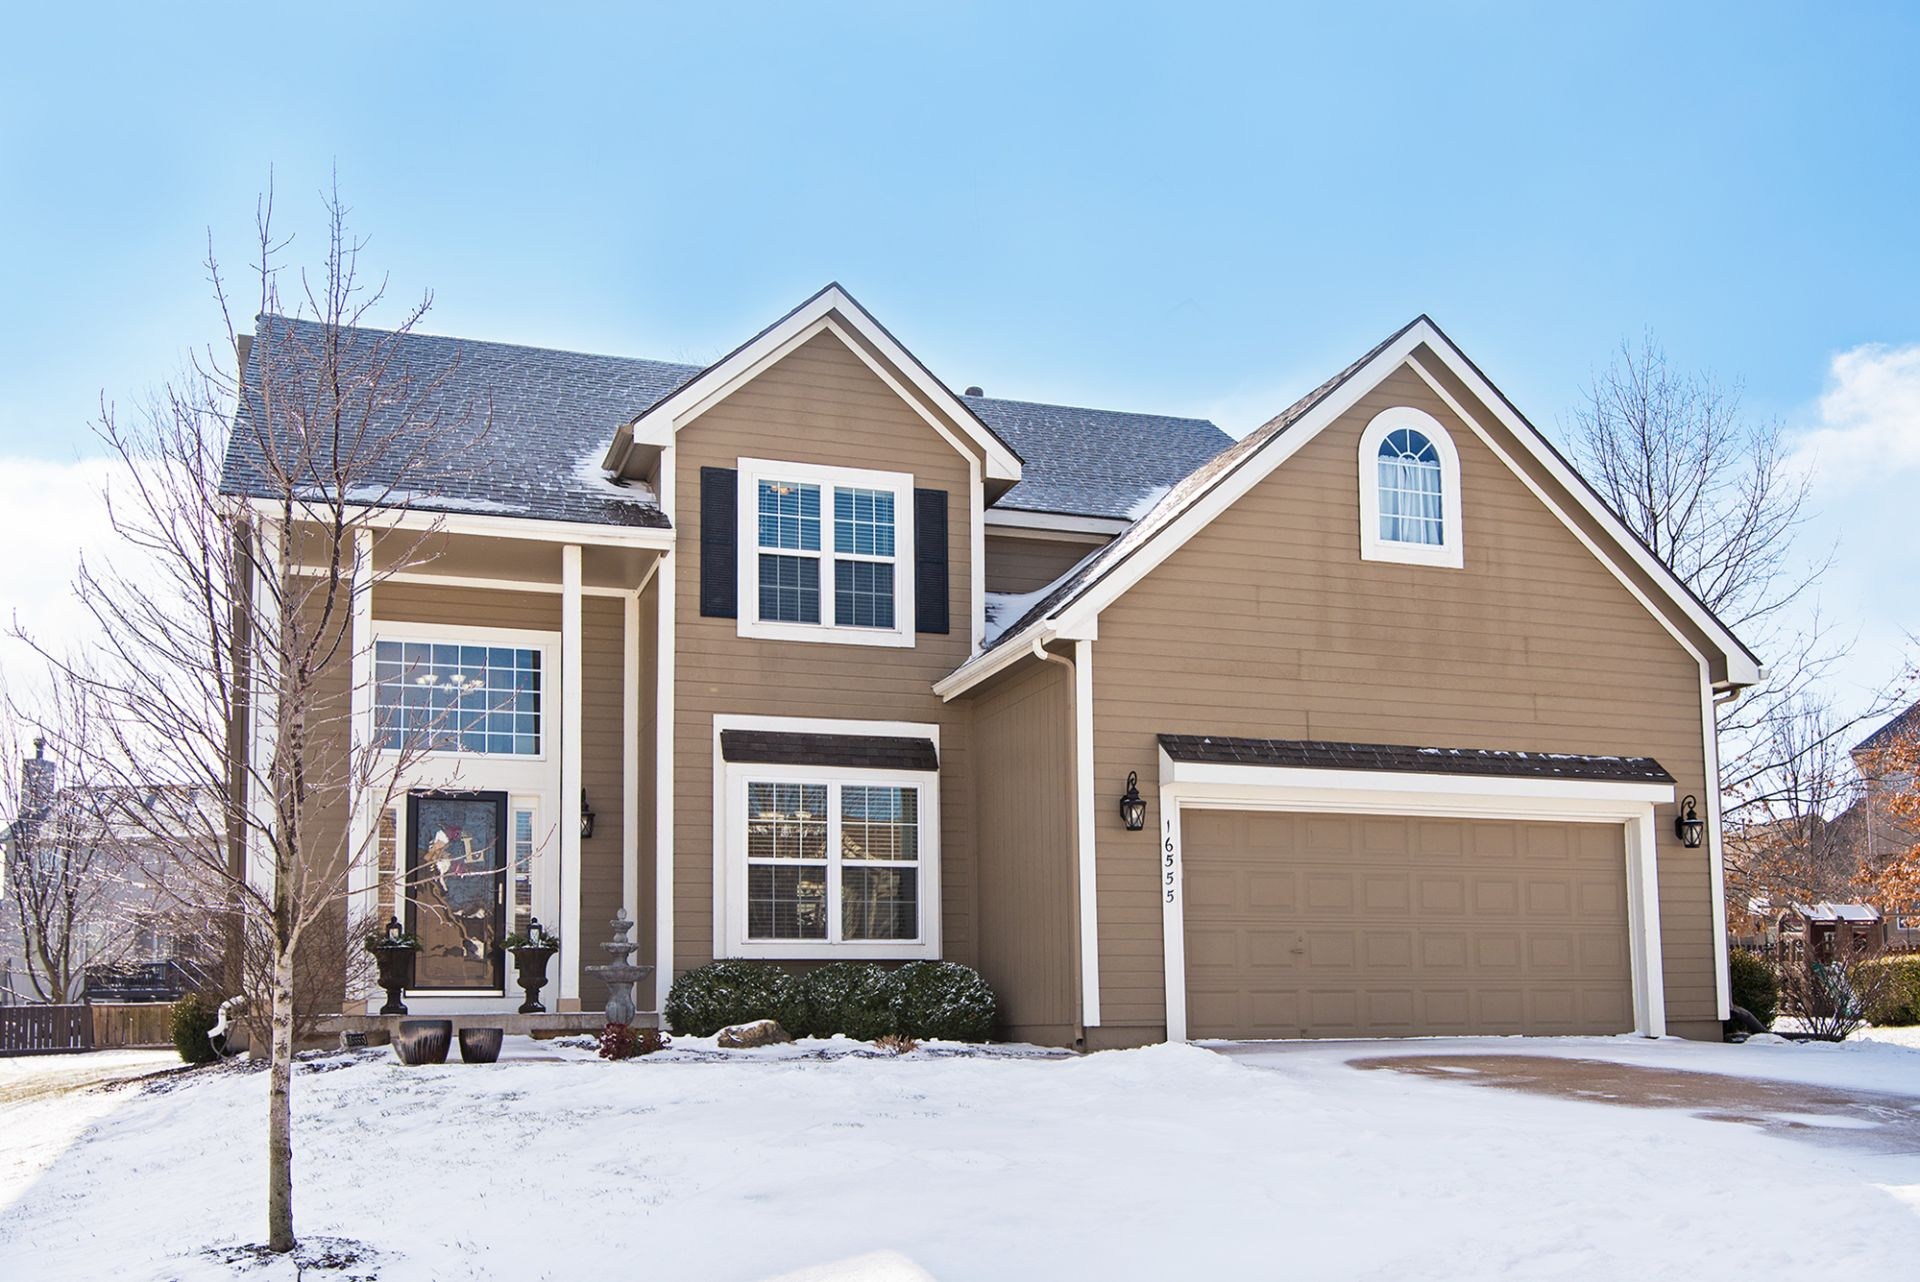 JUST LISTED with First OPEN HOUSE! Go Ahead, Fall in Love with this Gorgeous Home!